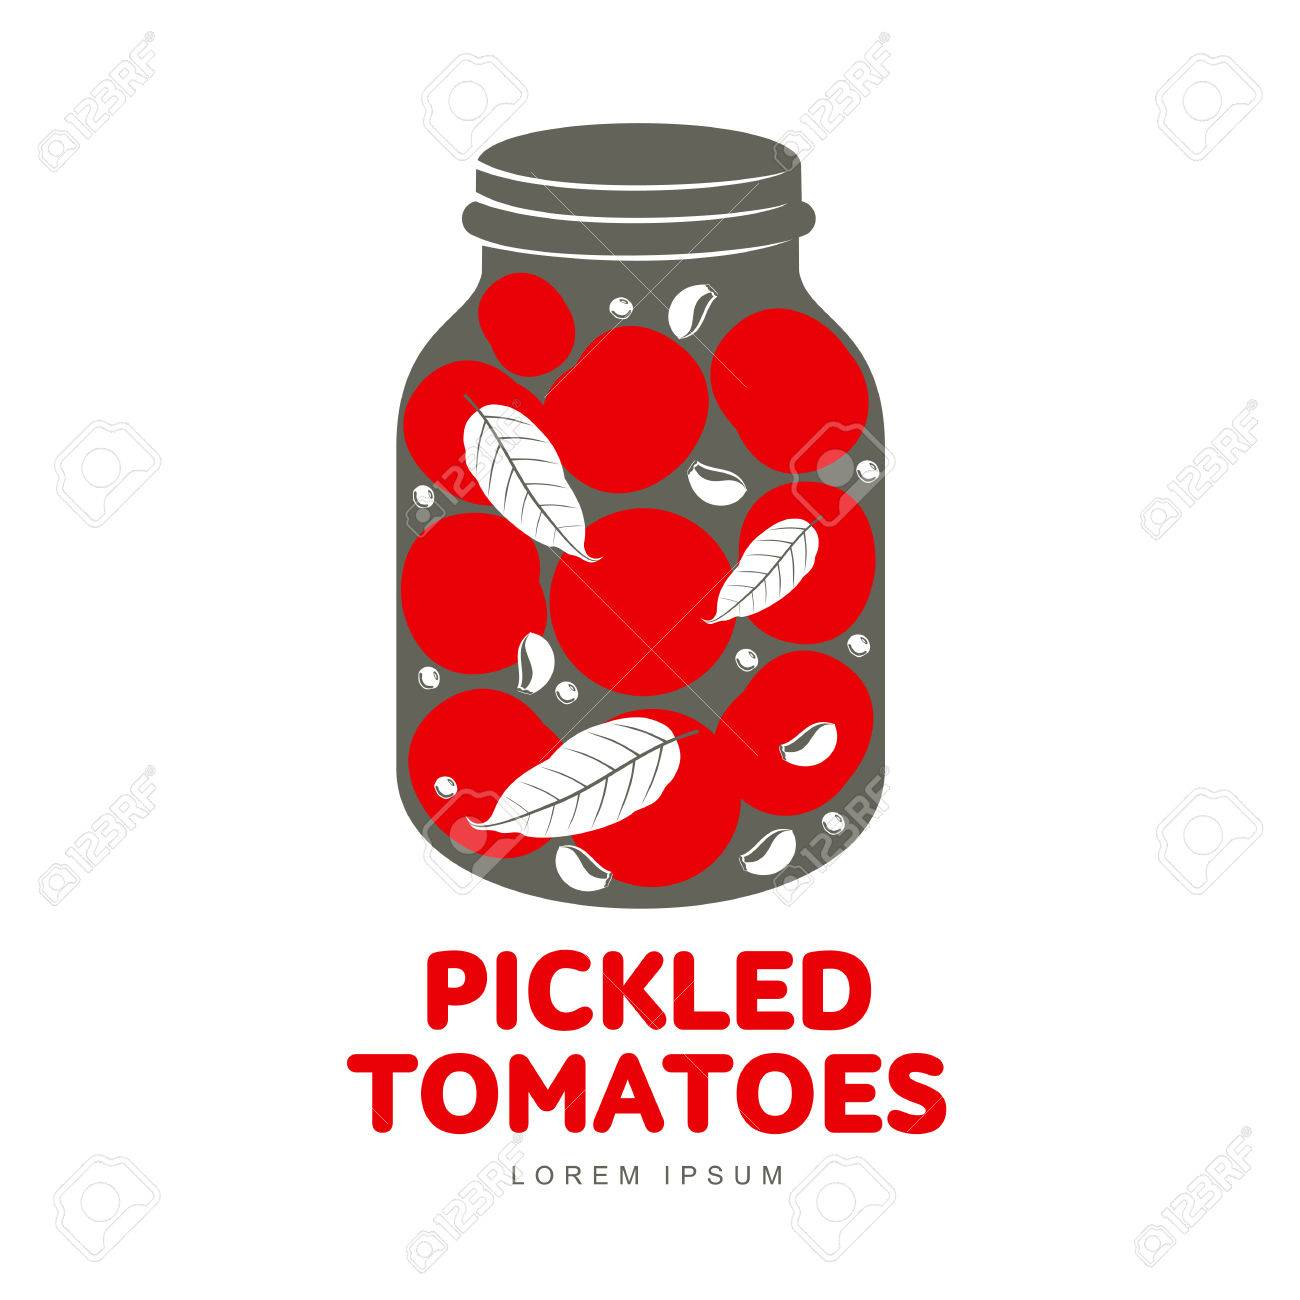 81897011 pickled tomatoes glass jar logo for your design home canning tomatoes marinade black peppercorn bay